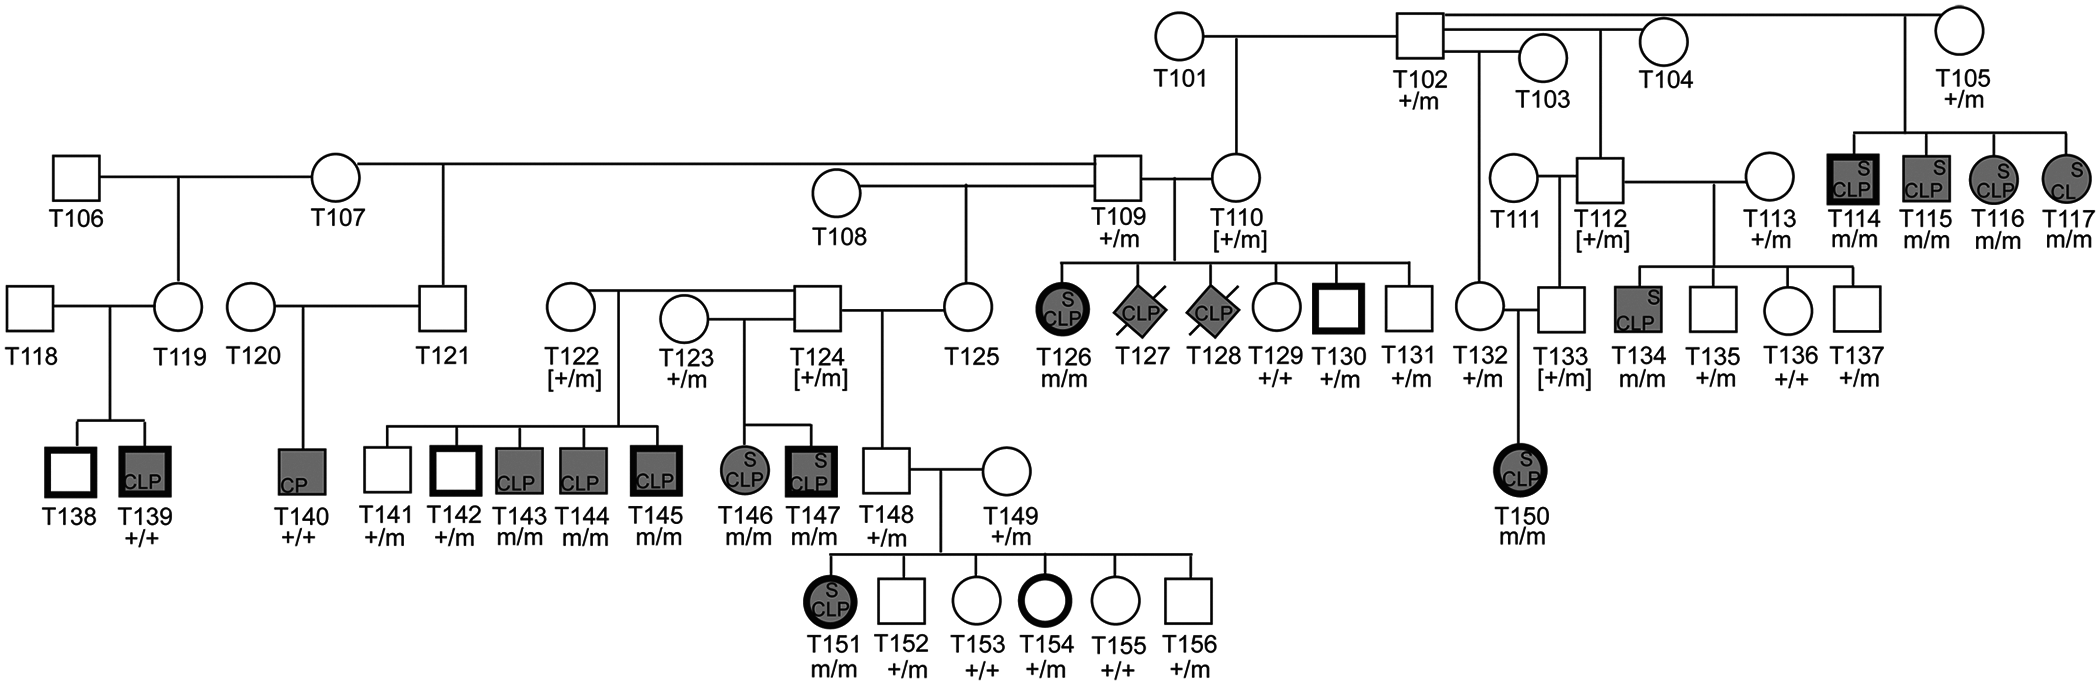 Pedigree of NSDTR families depicting segregation of the phenotype with the <i>ADAMTS20</i> deletion.